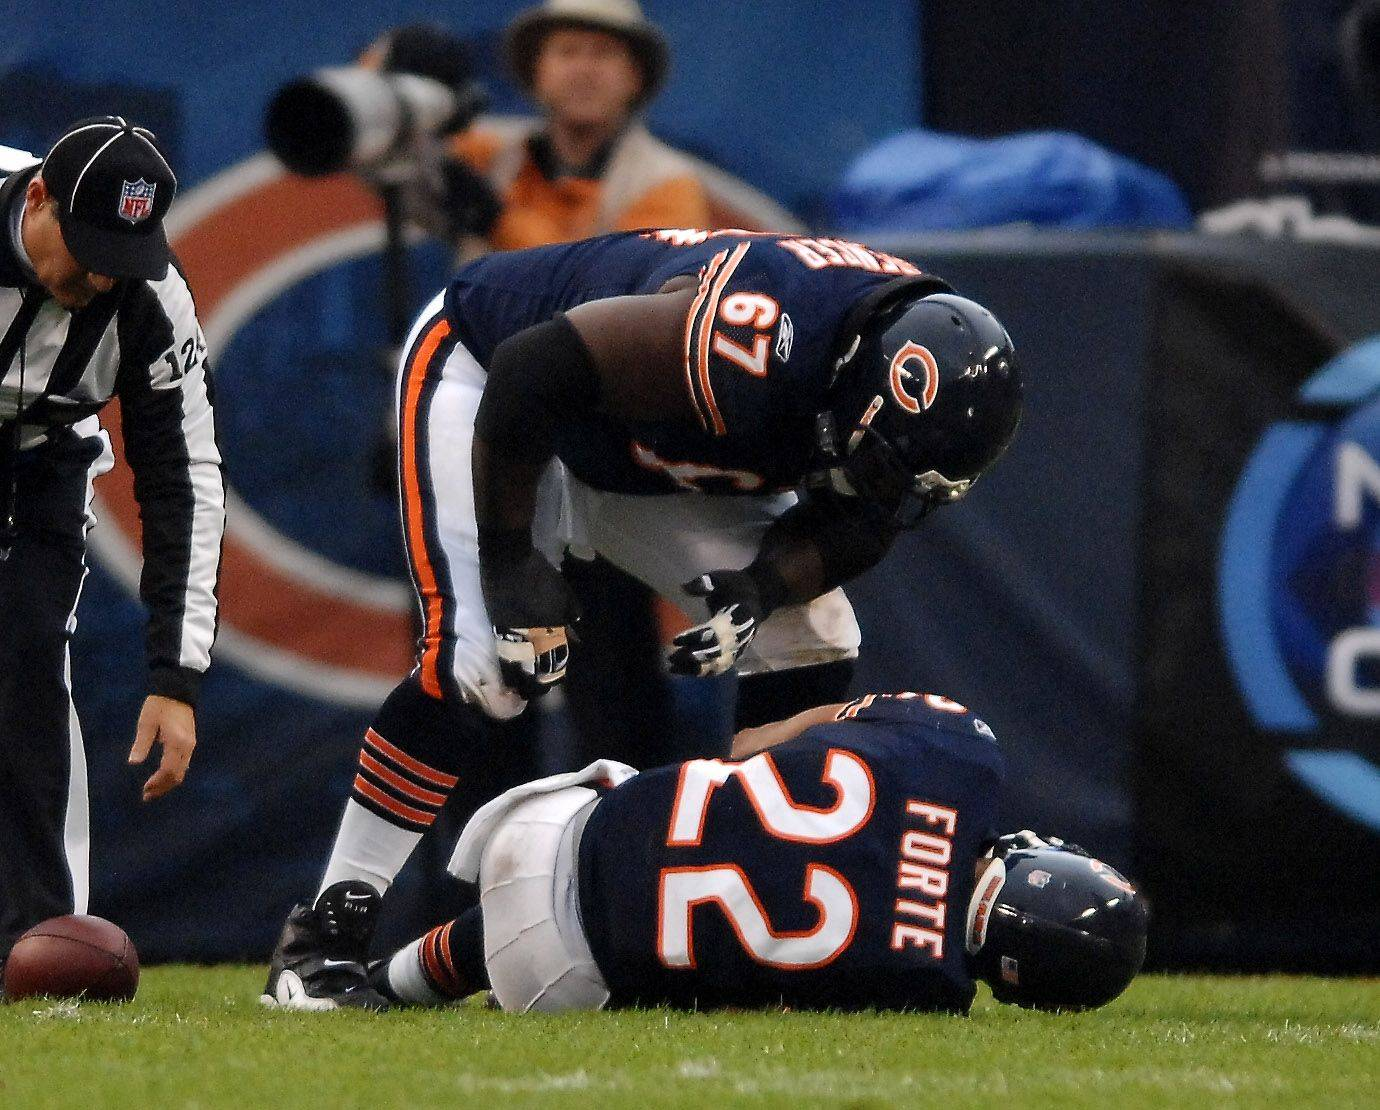 Chris Spencer checks on running back Matt Forte, who injured his right knee in the first quarter and did not return Sunday.